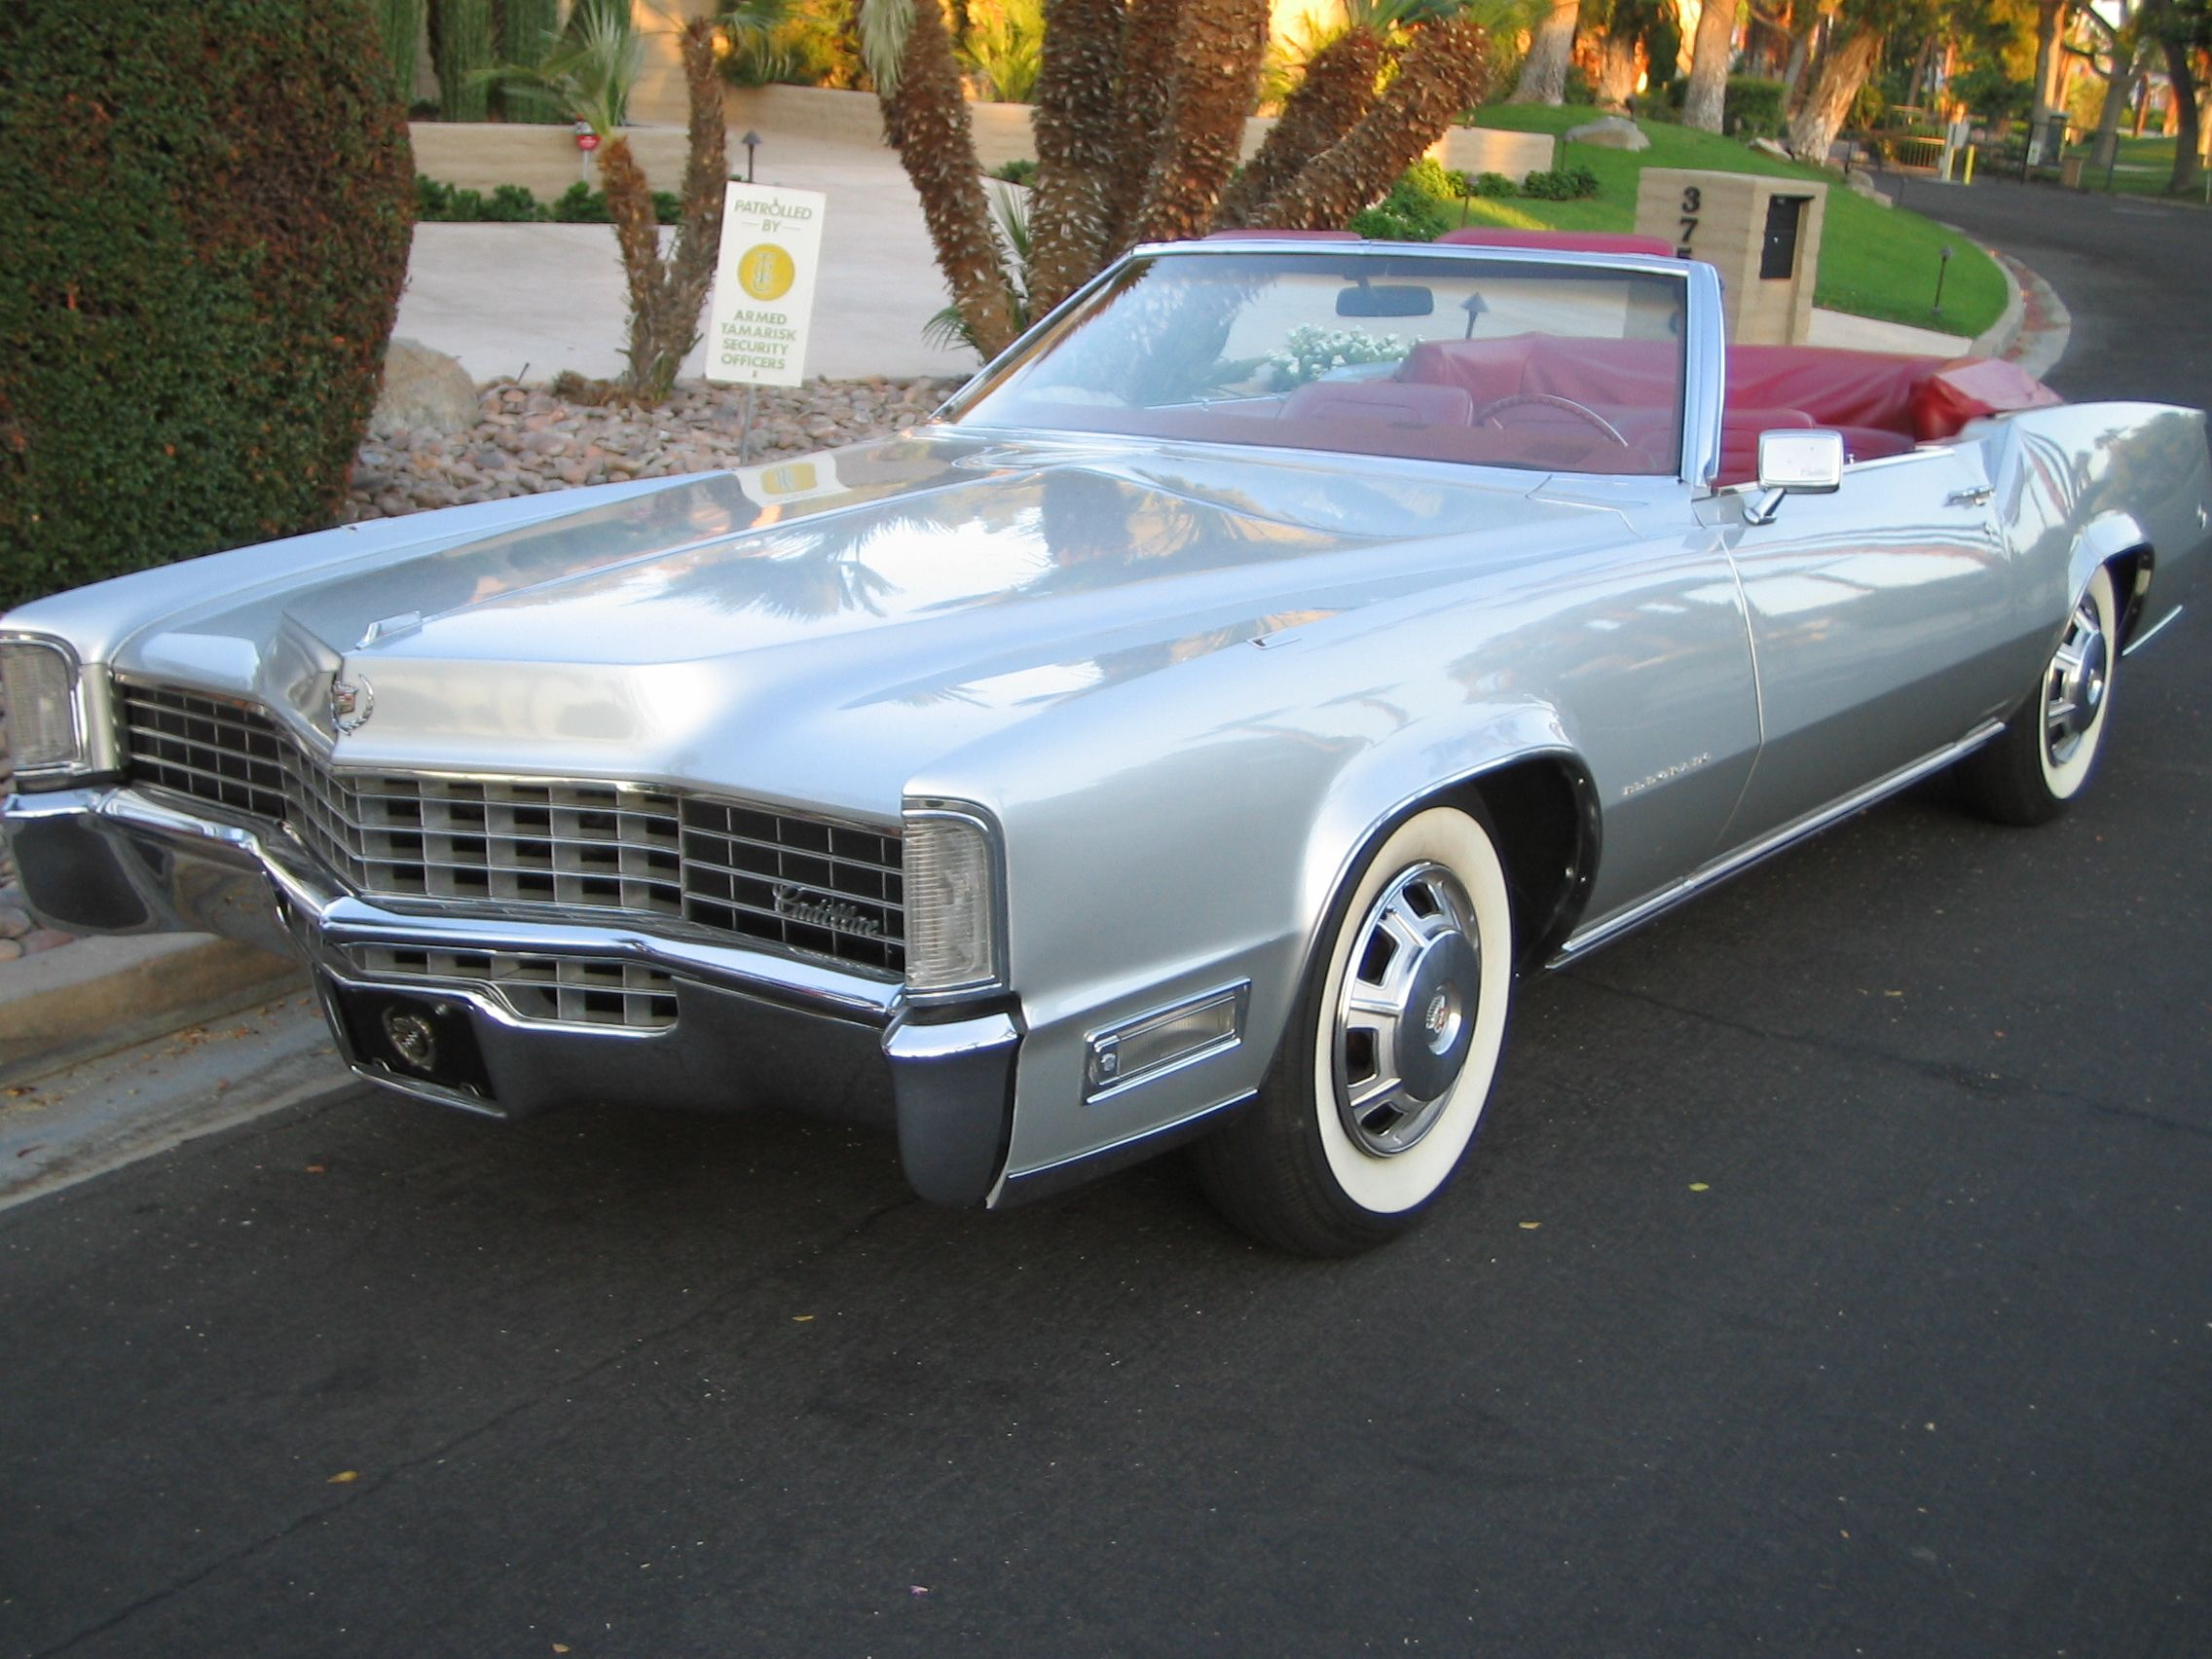 1968 Cadillac Eldorado Convertible An Interesting Custom But The Wide Whites Would Not Be My Choice